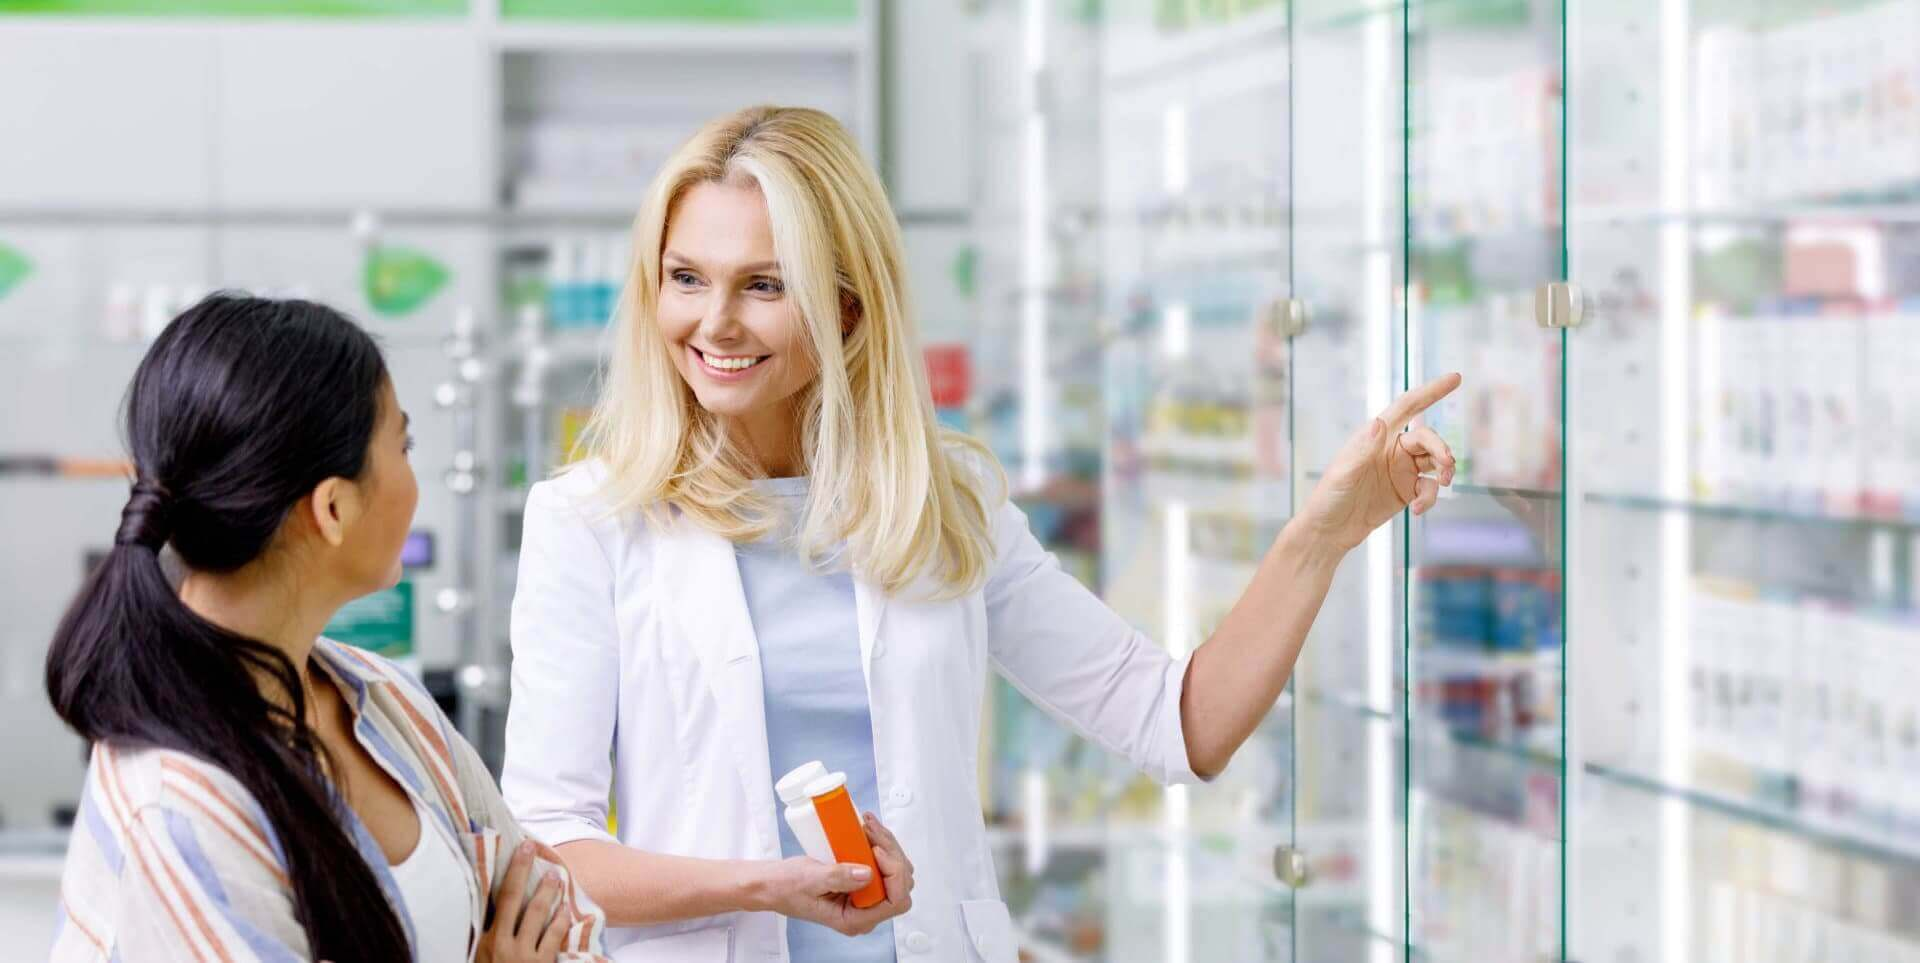 pharmacist holding medicines helping customer